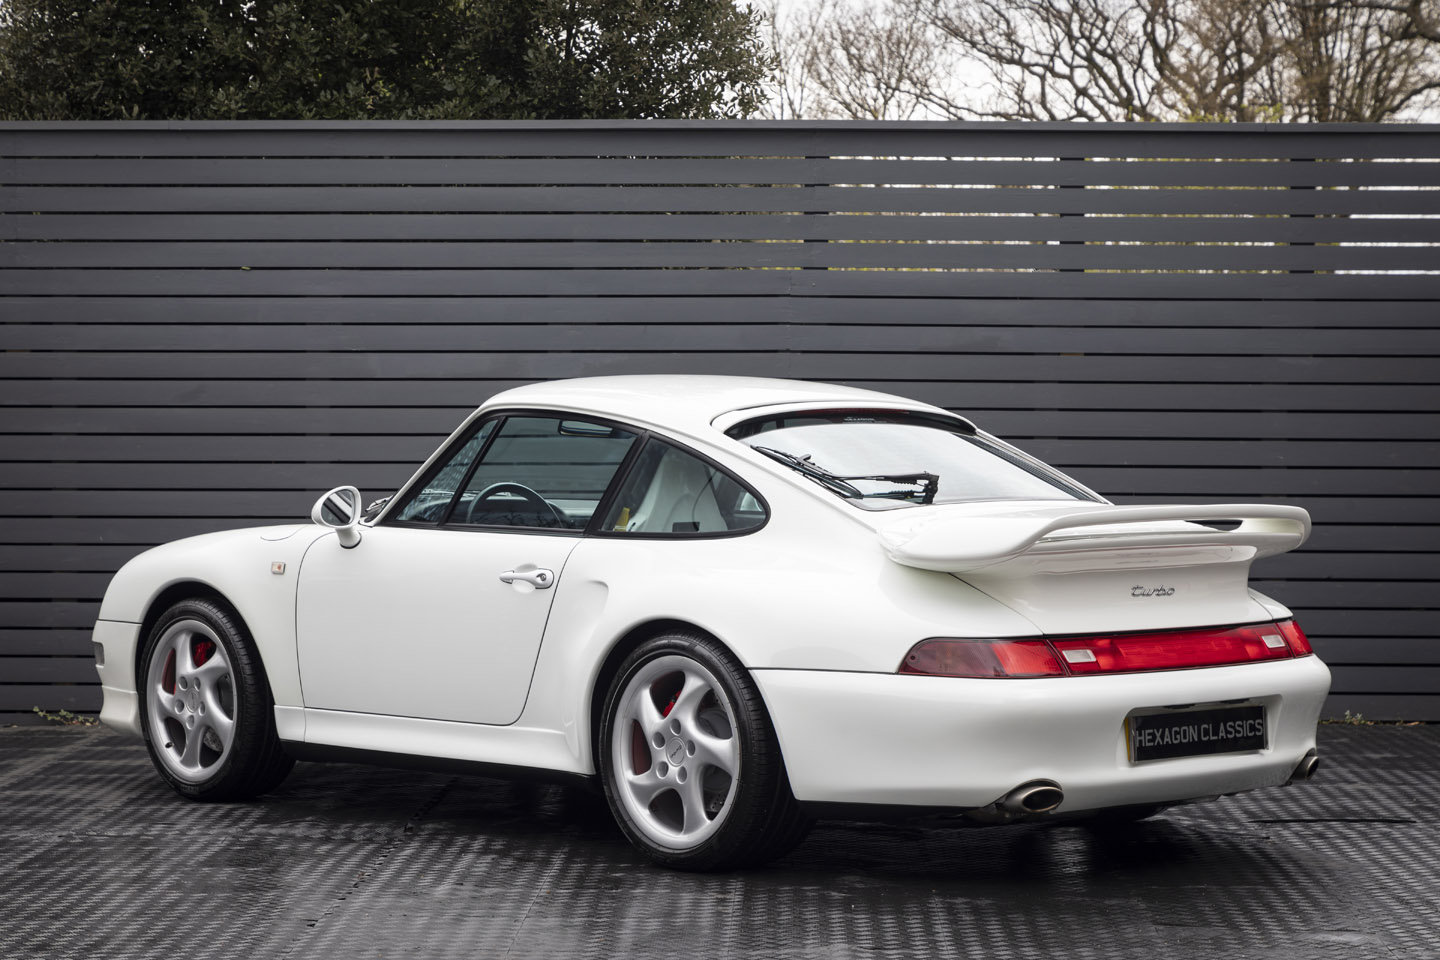 1996 Porsche 993 TURBO FACTORY X50/X79 PACKS !! LHD For Sale (picture 2 of 6)